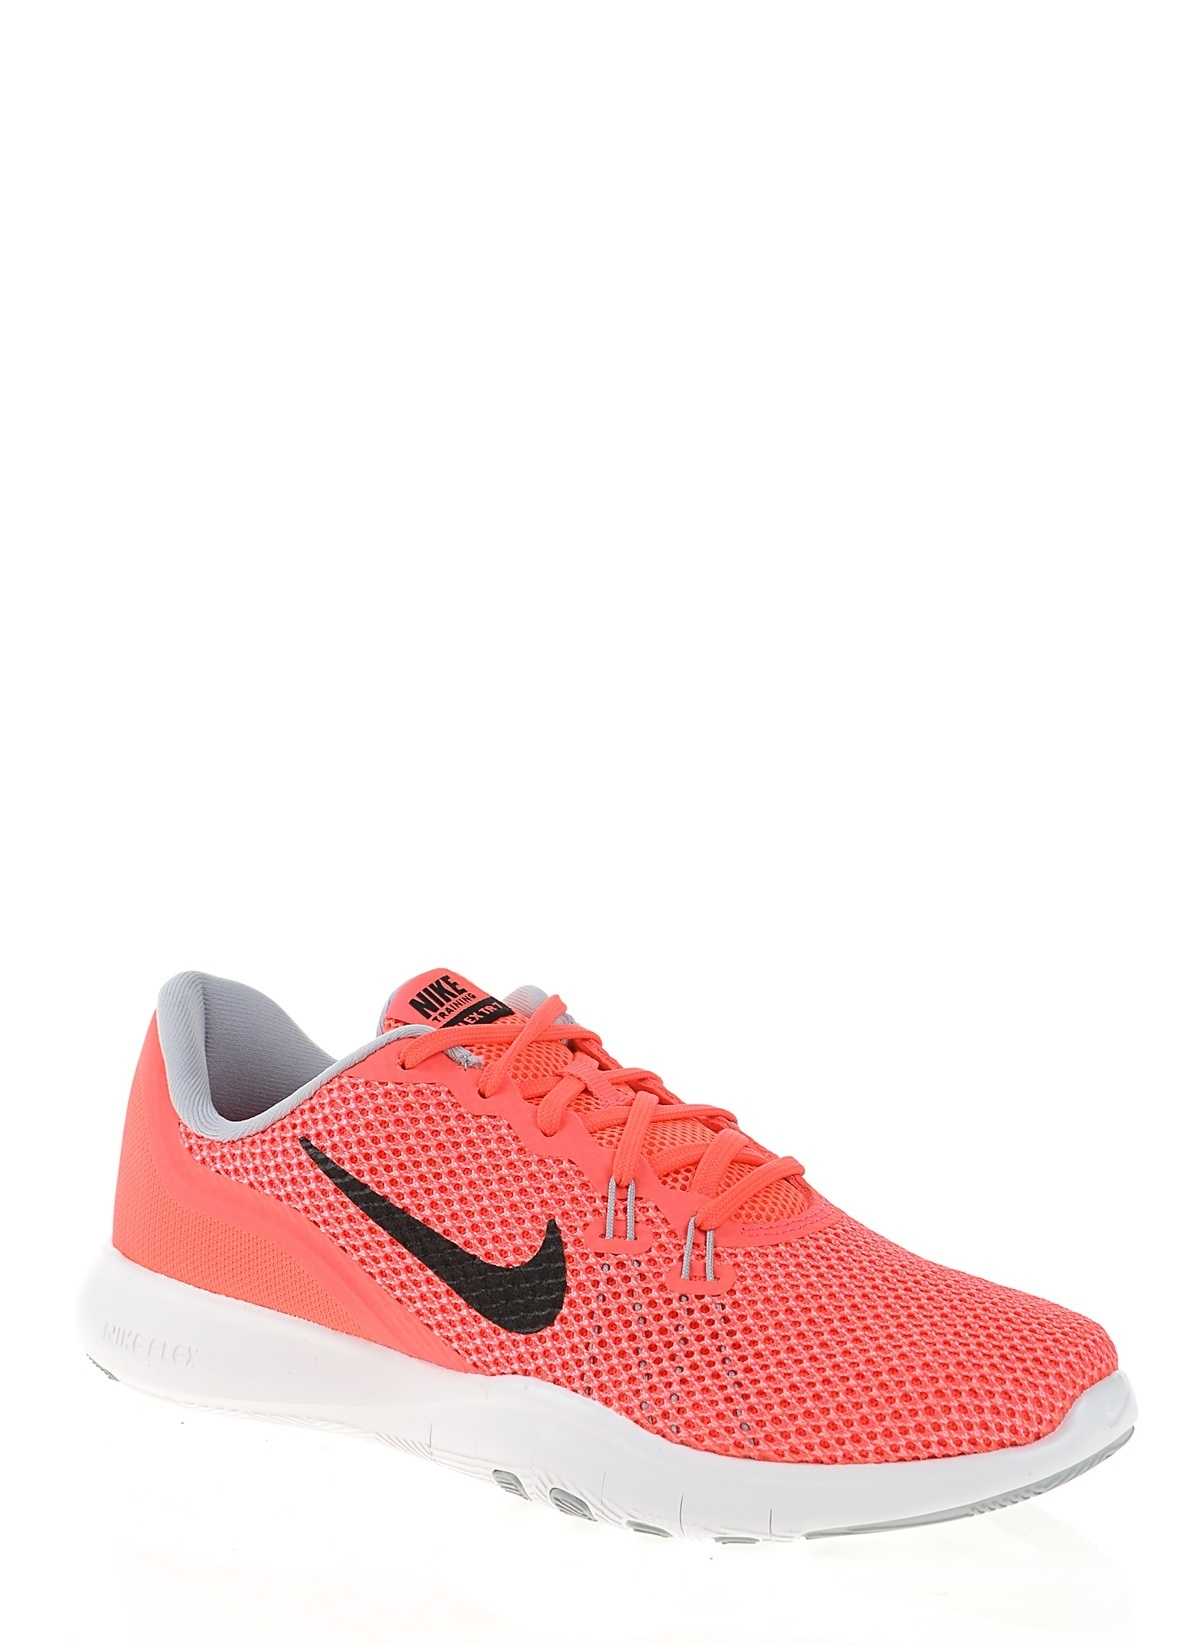 93ac45e2adf3 Nike Kadın W Nike Flex Trainer 7 Solar Red Black-Hot Punch-Wolf ...